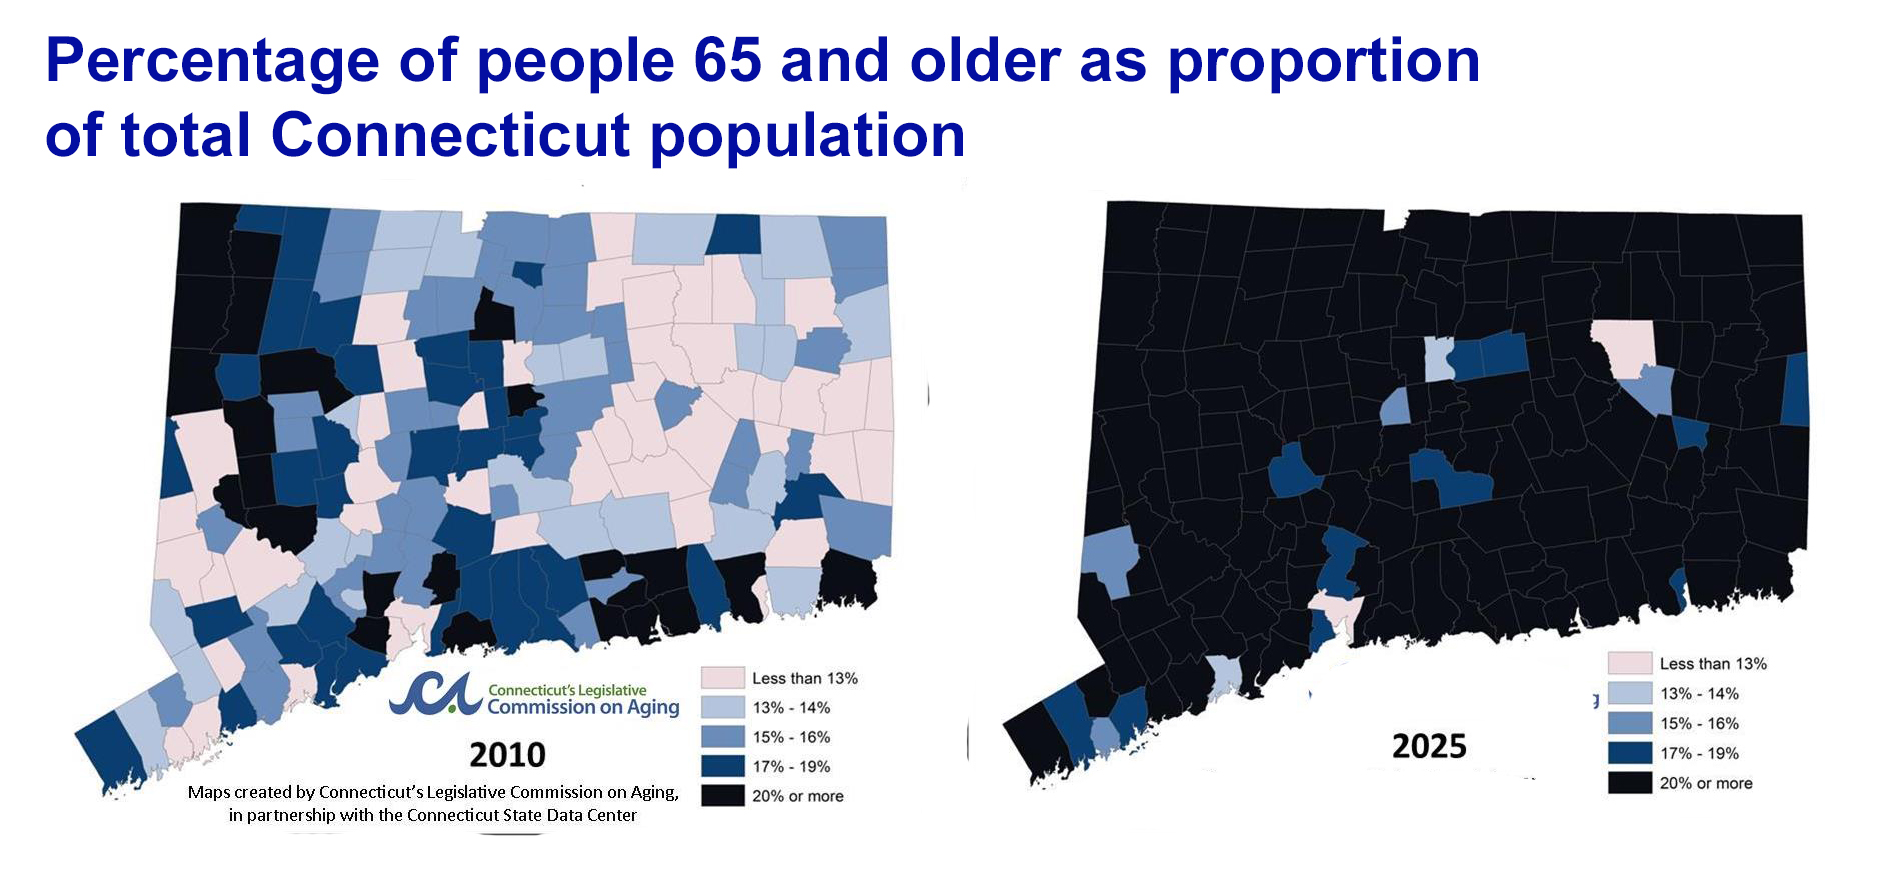 An aging Connecticut needs the Legislative Commission on Aging